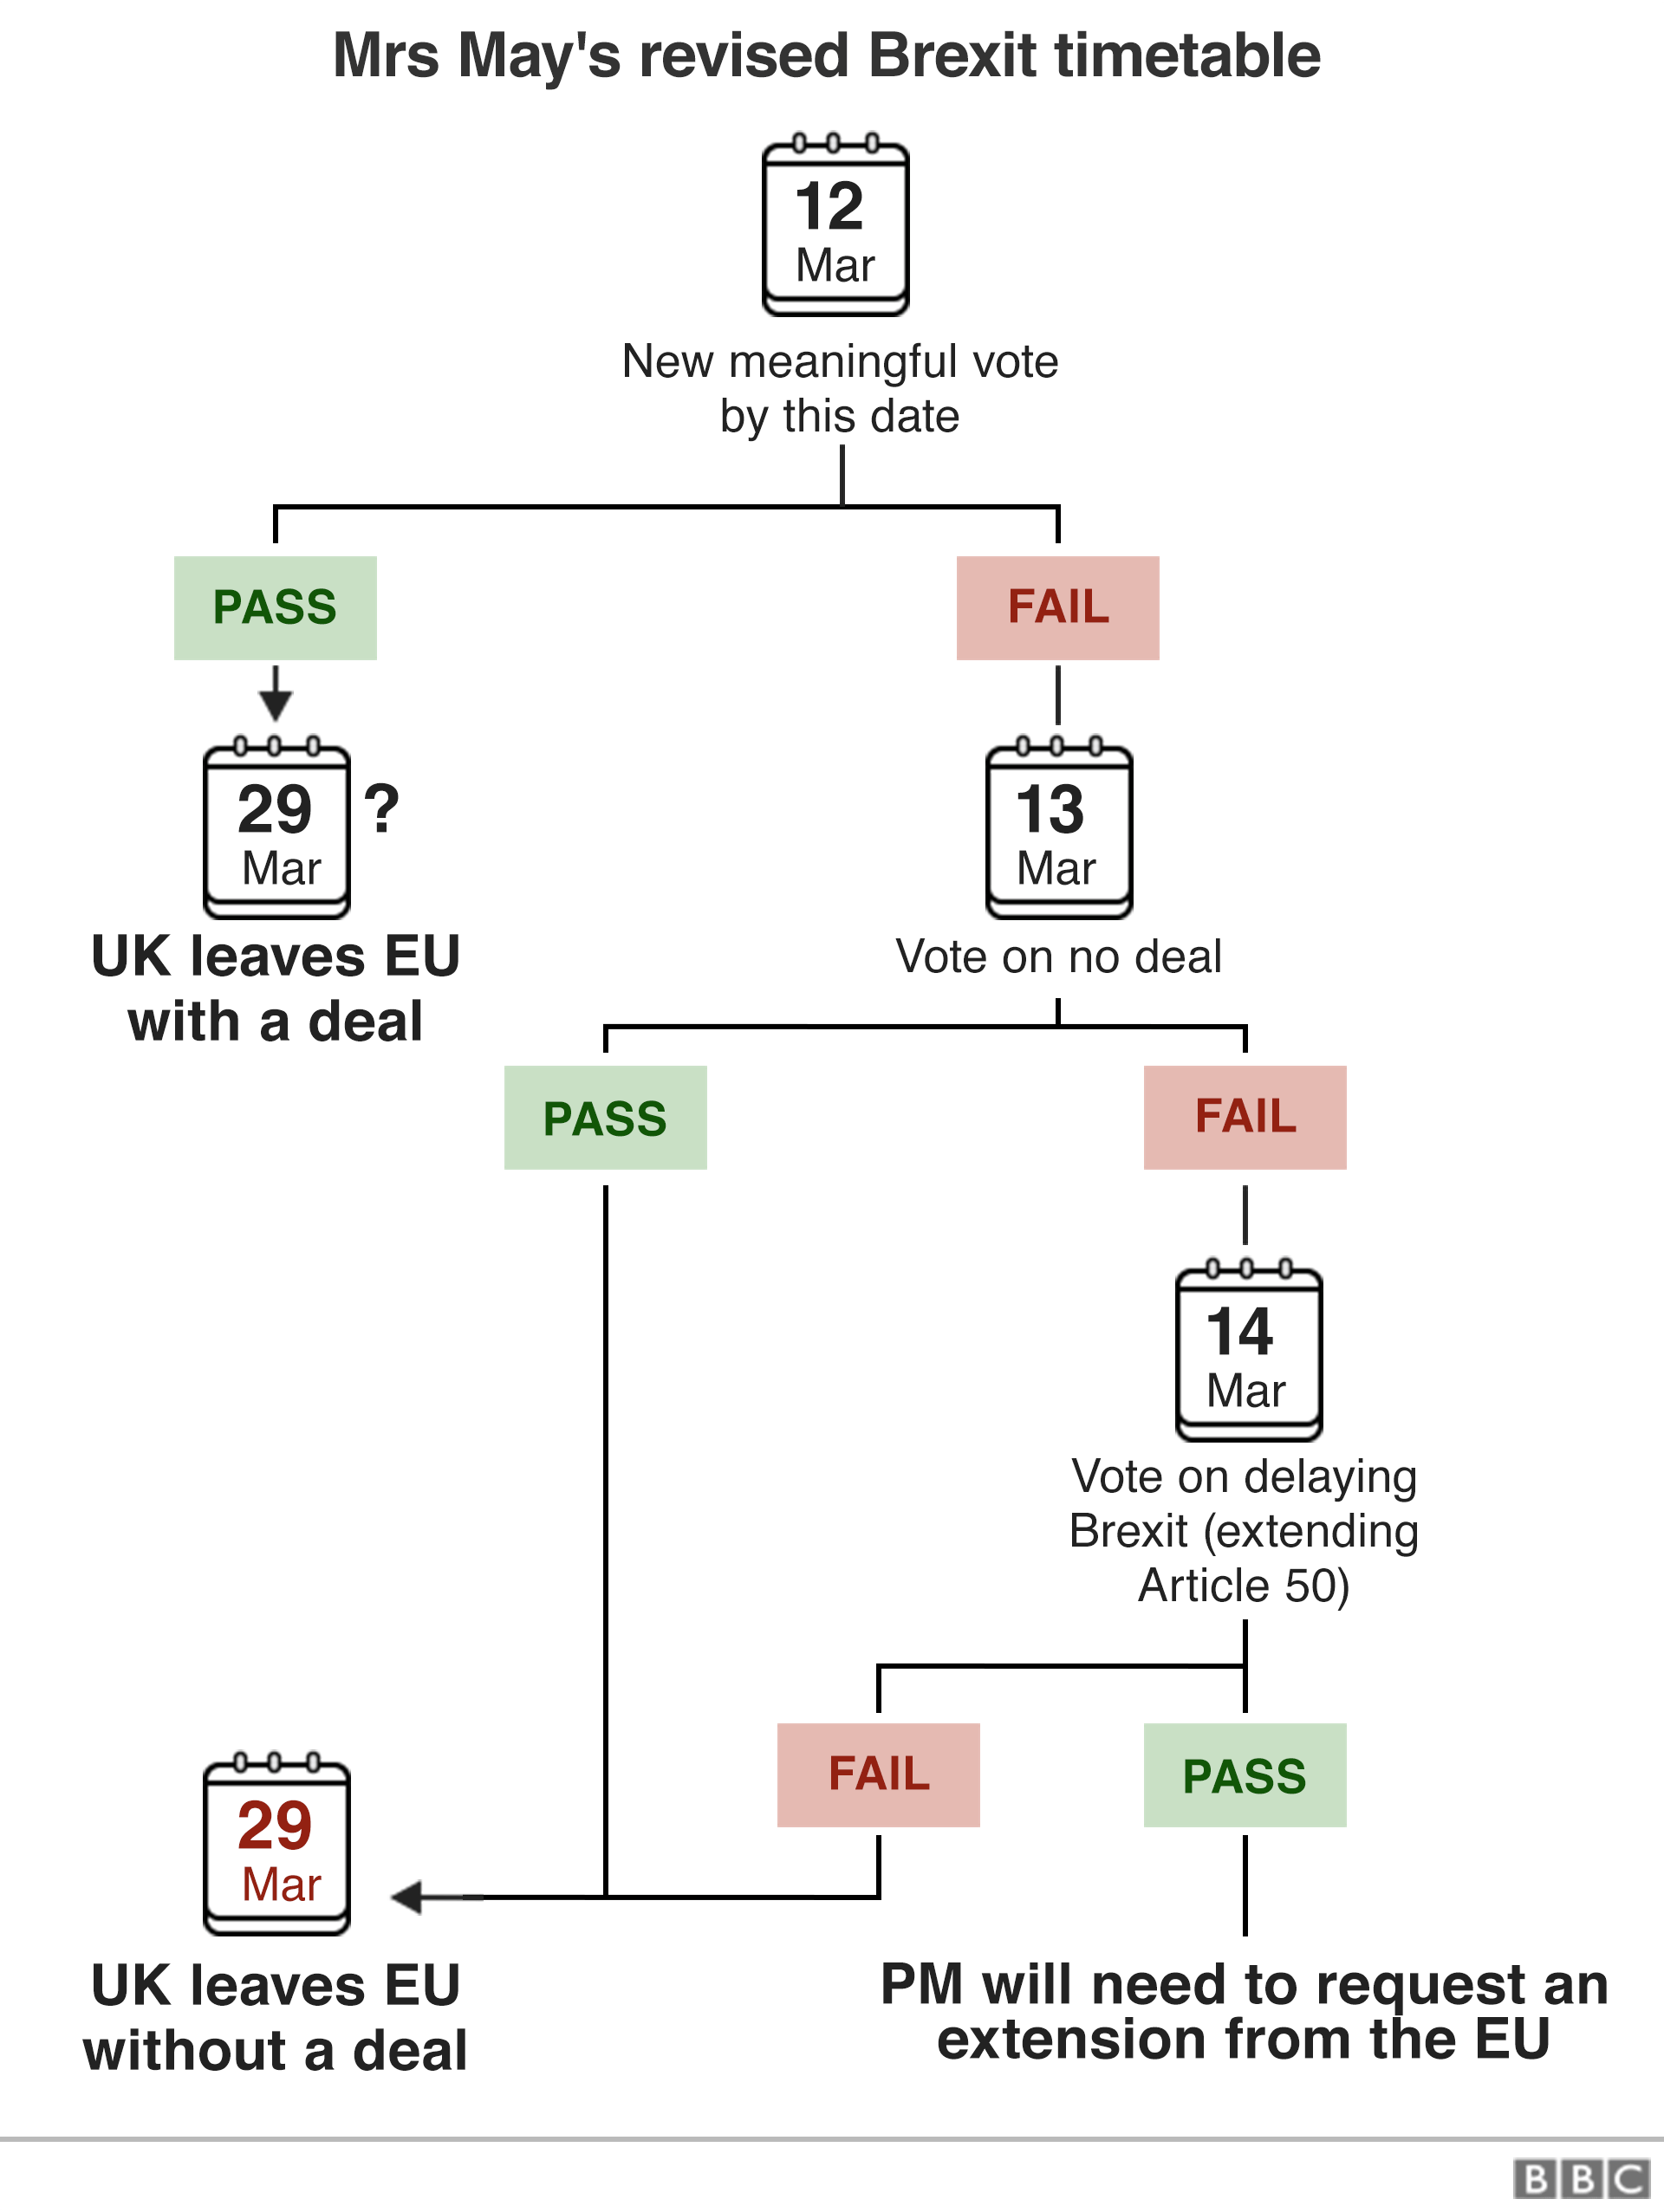 Flowchart explaining Mrs May's revised timetable of votes for Brexit